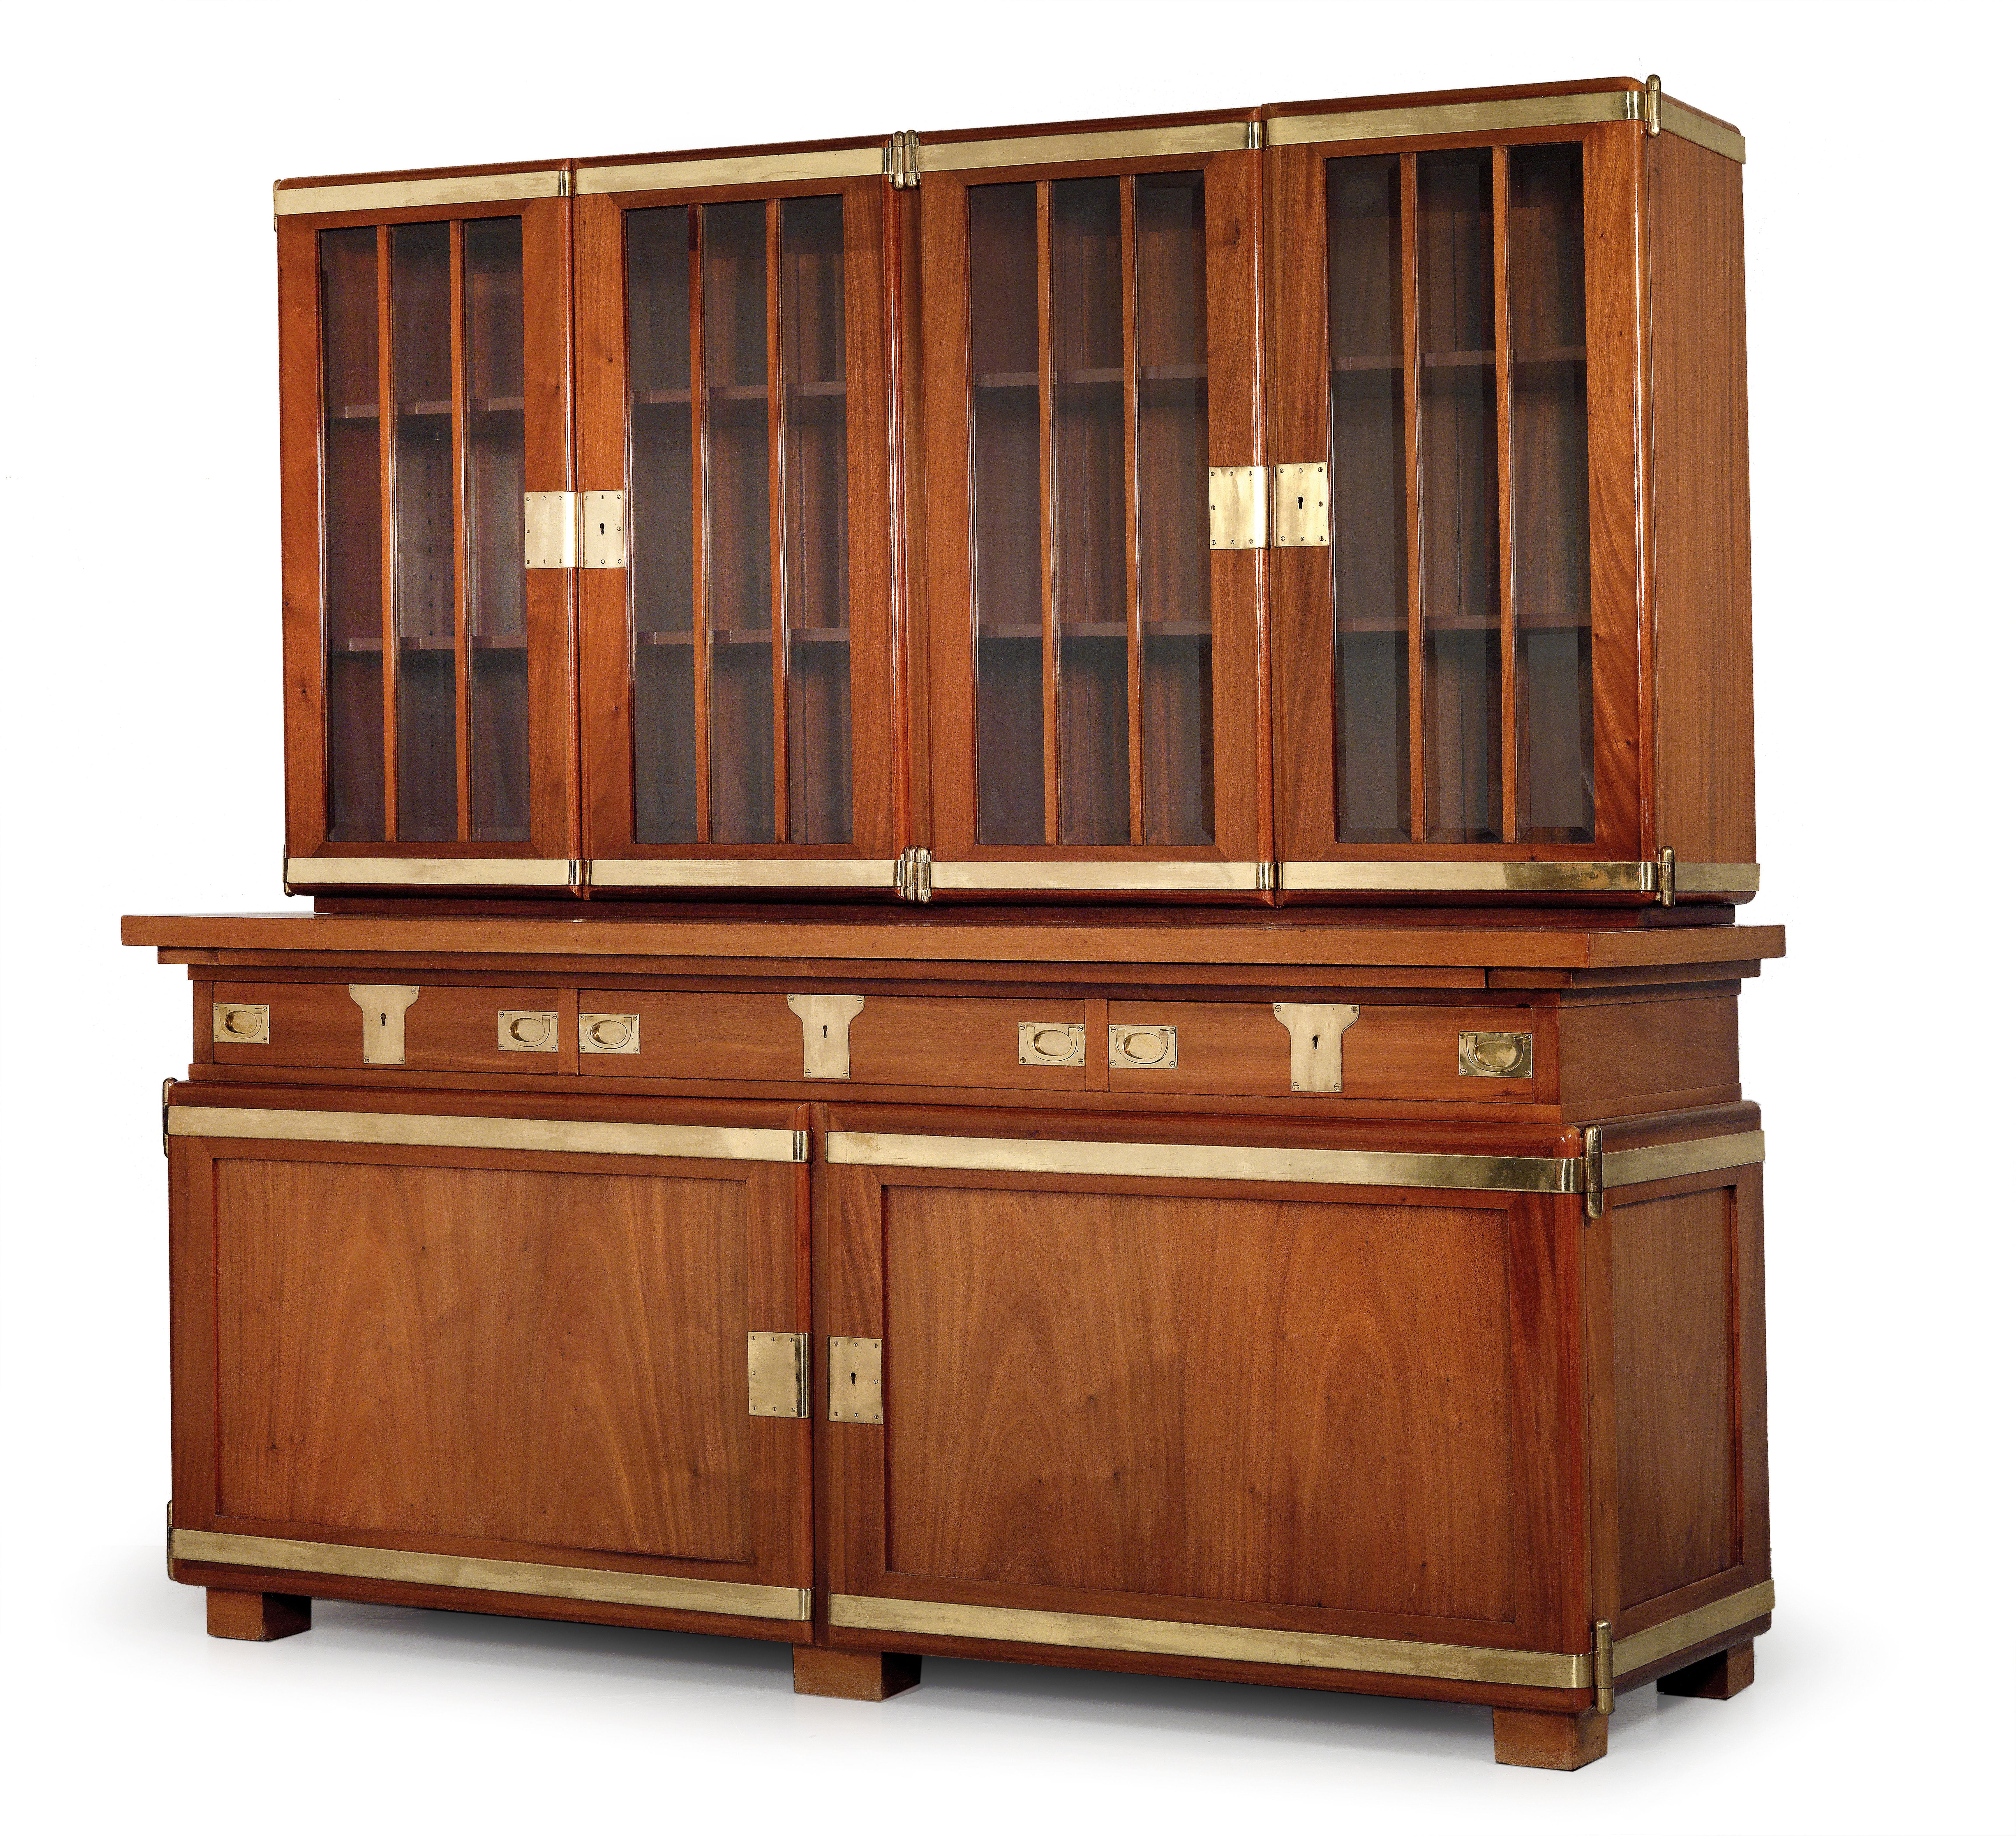 Sideboard Variant Of The Stossler Sideboard By Adolf Loos Executed